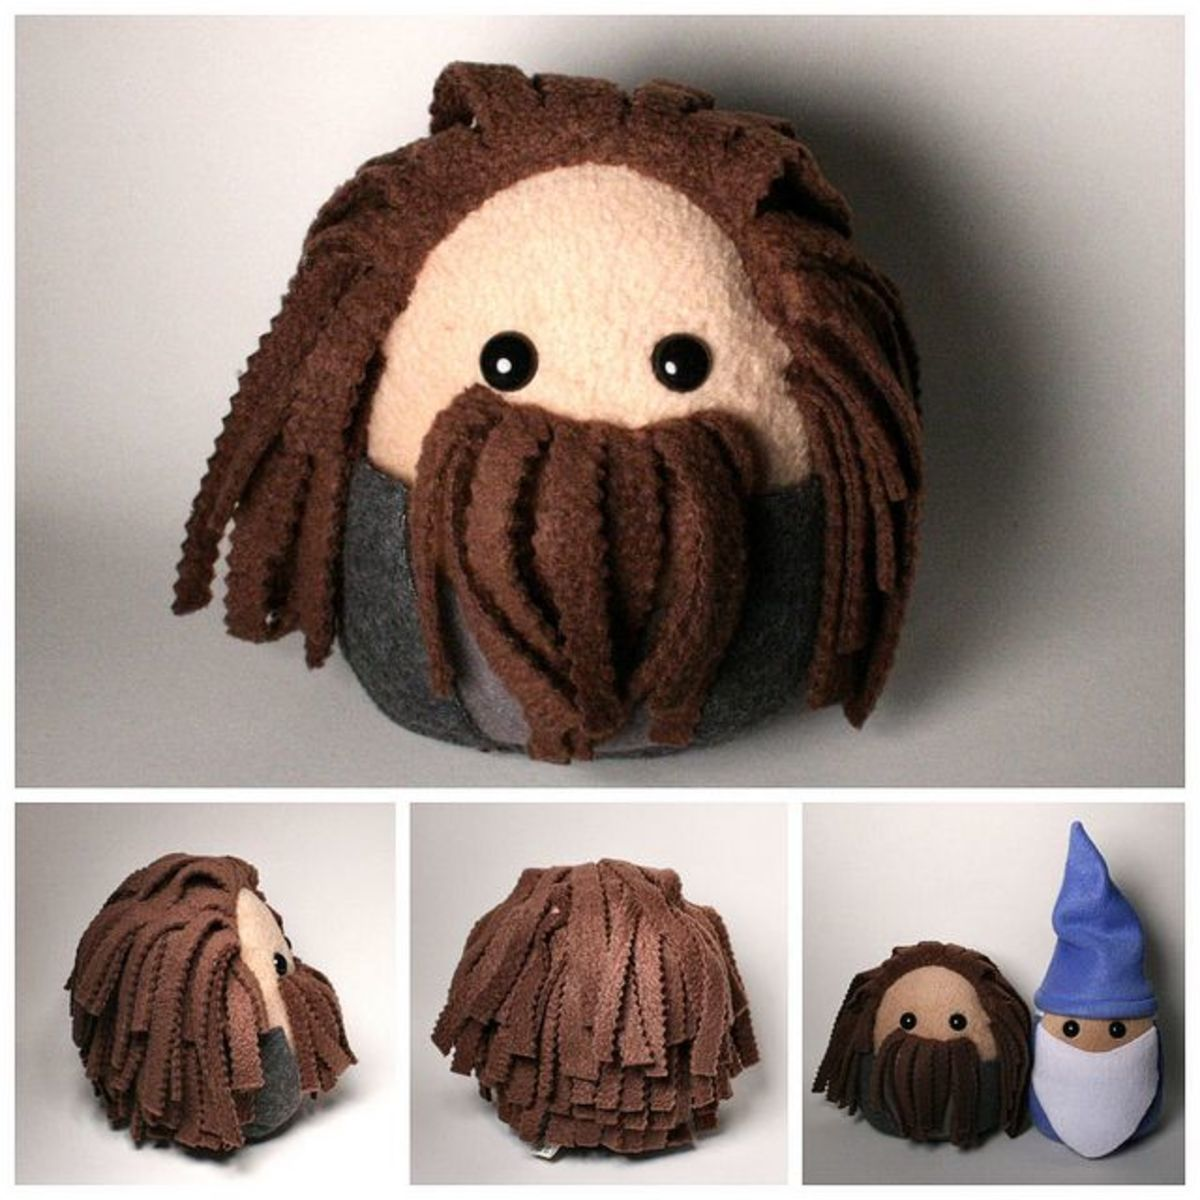 A good way to get inspiration for character softies is from books and movies - although you won't be able to sell these without permission of course. I love these Hagrid and Dumbledore fleece plushies!